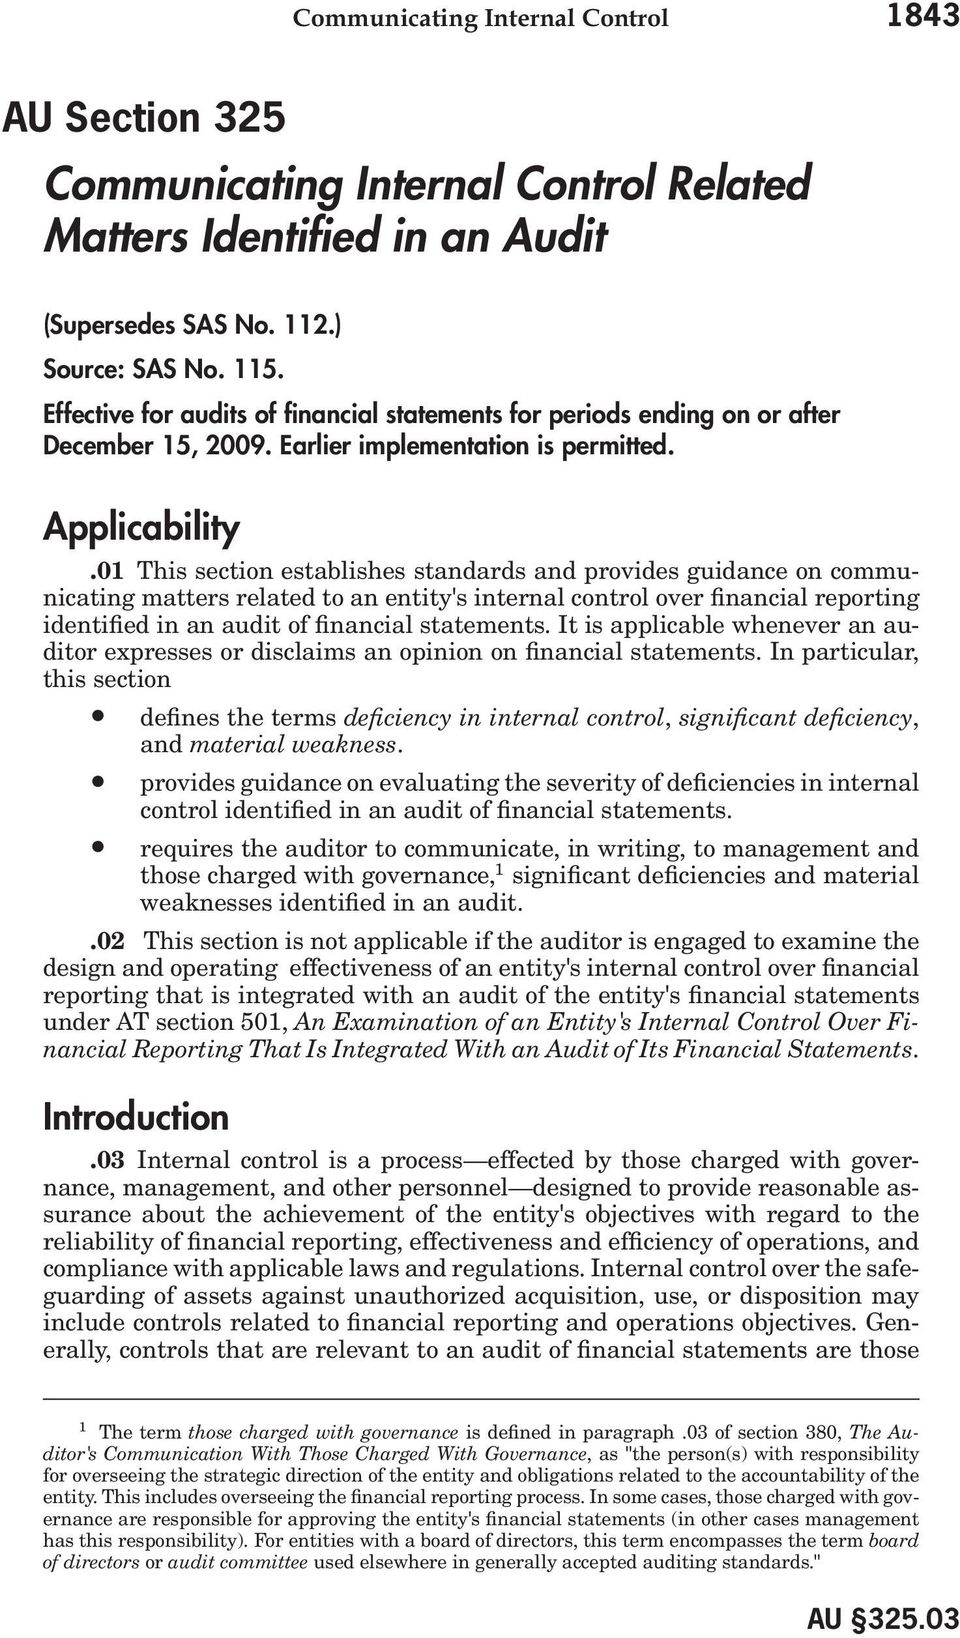 01 This section establishes standards and provides guidance on communicating matters related to an entity's internal control over financial reporting identified in an audit of financial statements.